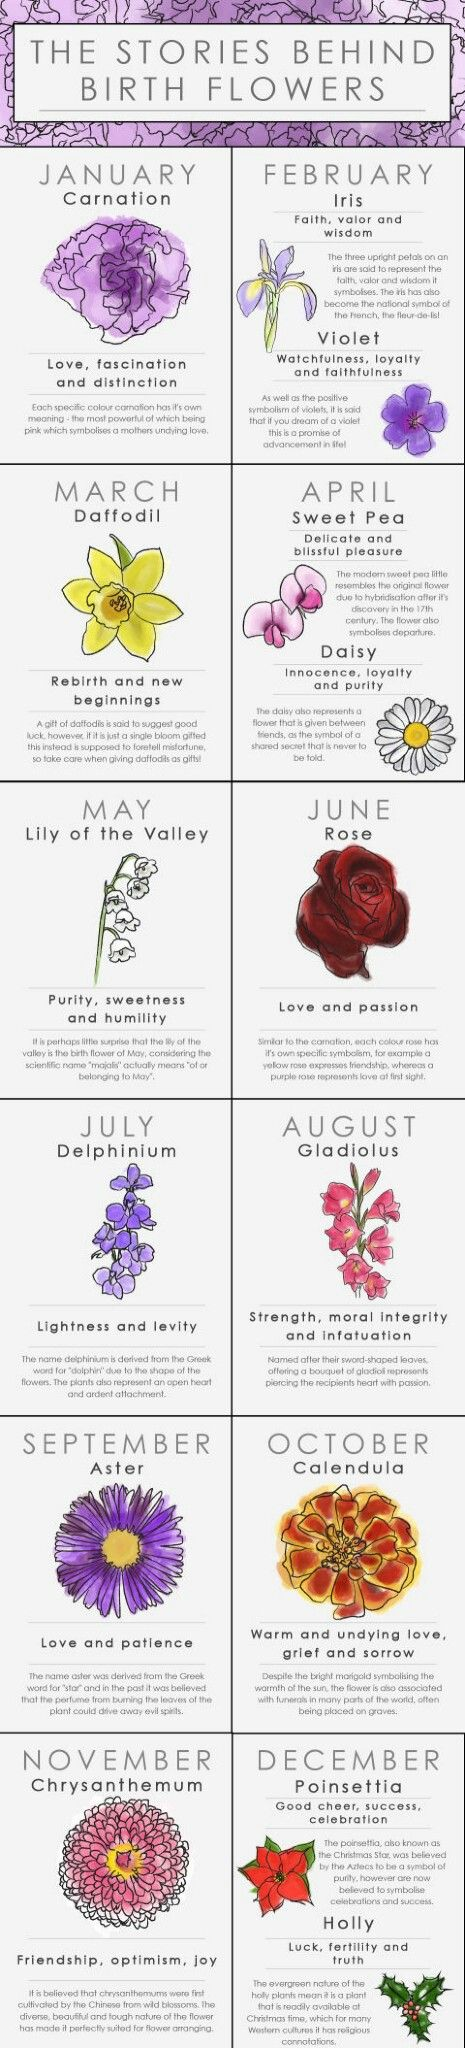 Pin by doris erdman on birthday astrology flowers stones im a micro preemie born 3 months early my birth month was scheduled for june i wonder if thats why i love roses so much izmirmasajfo